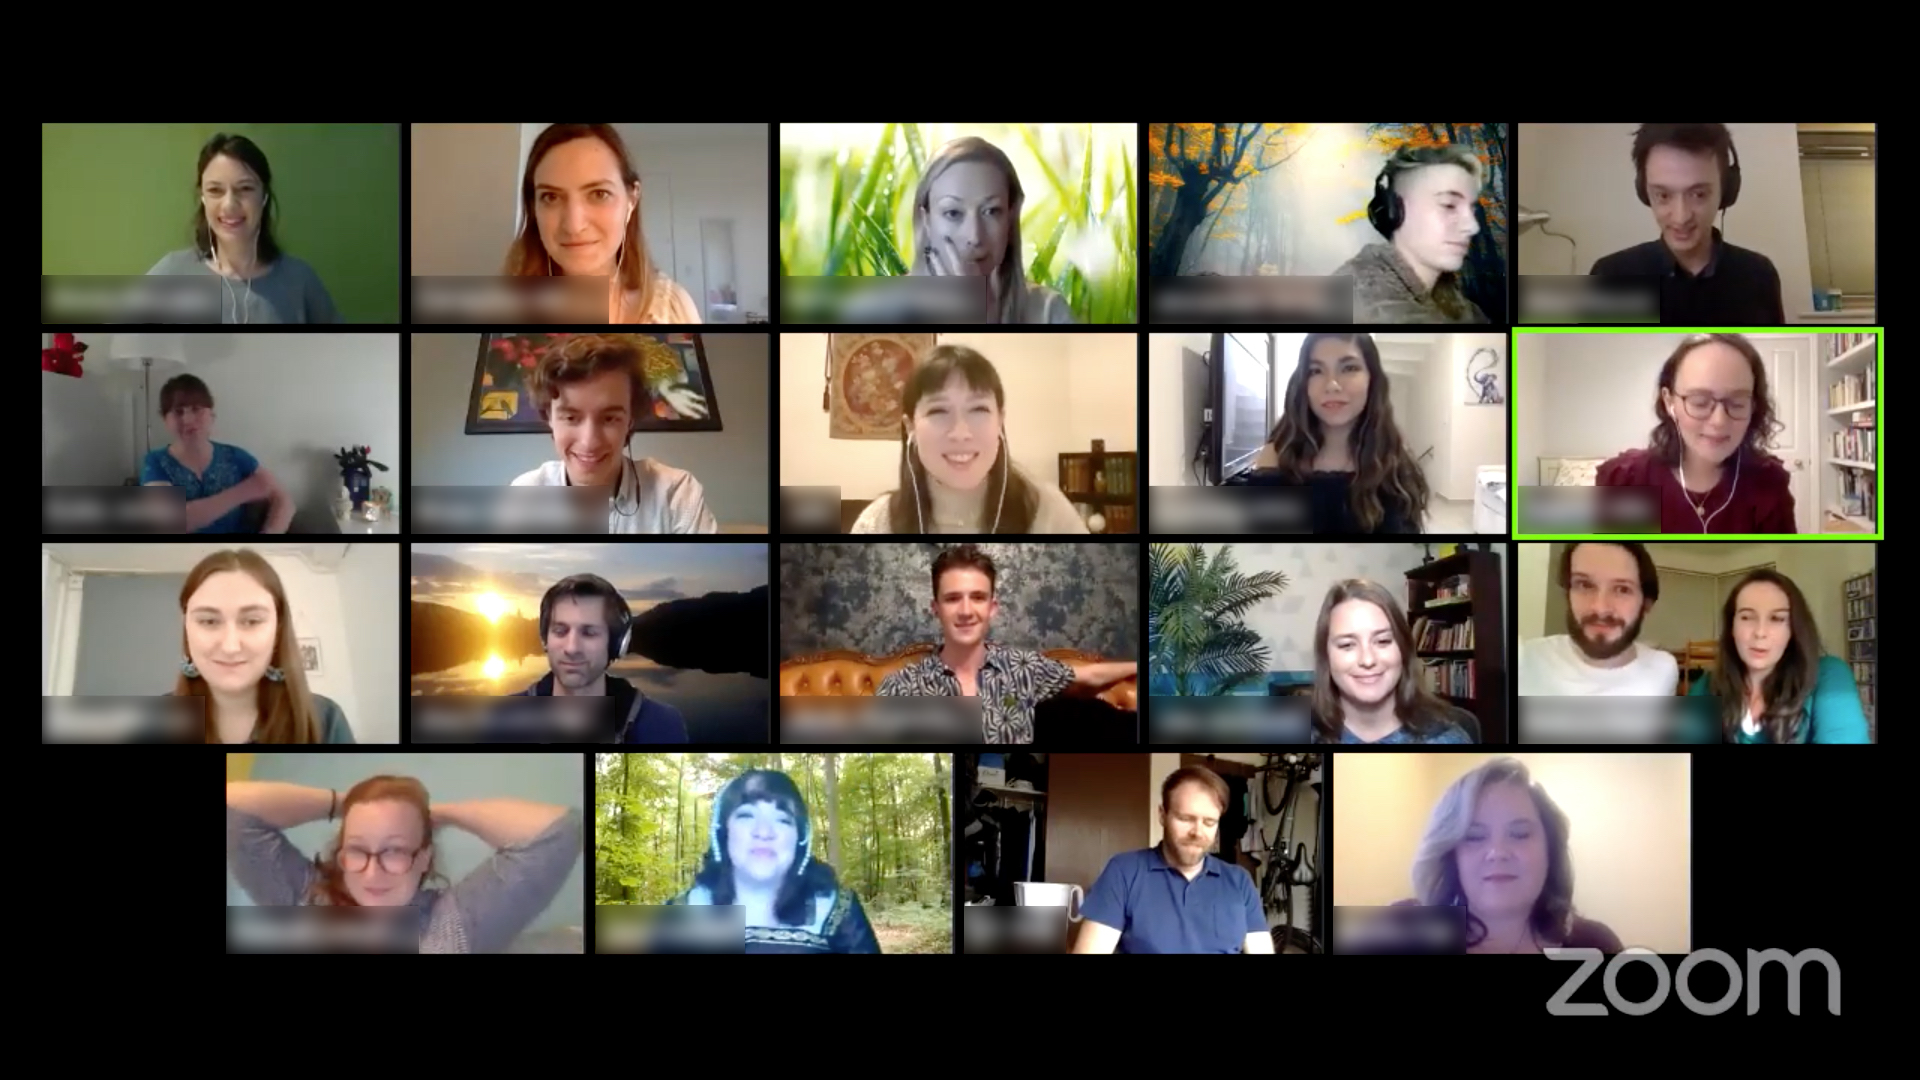 A screen is divided into small squares showing a variety of actors on a video call